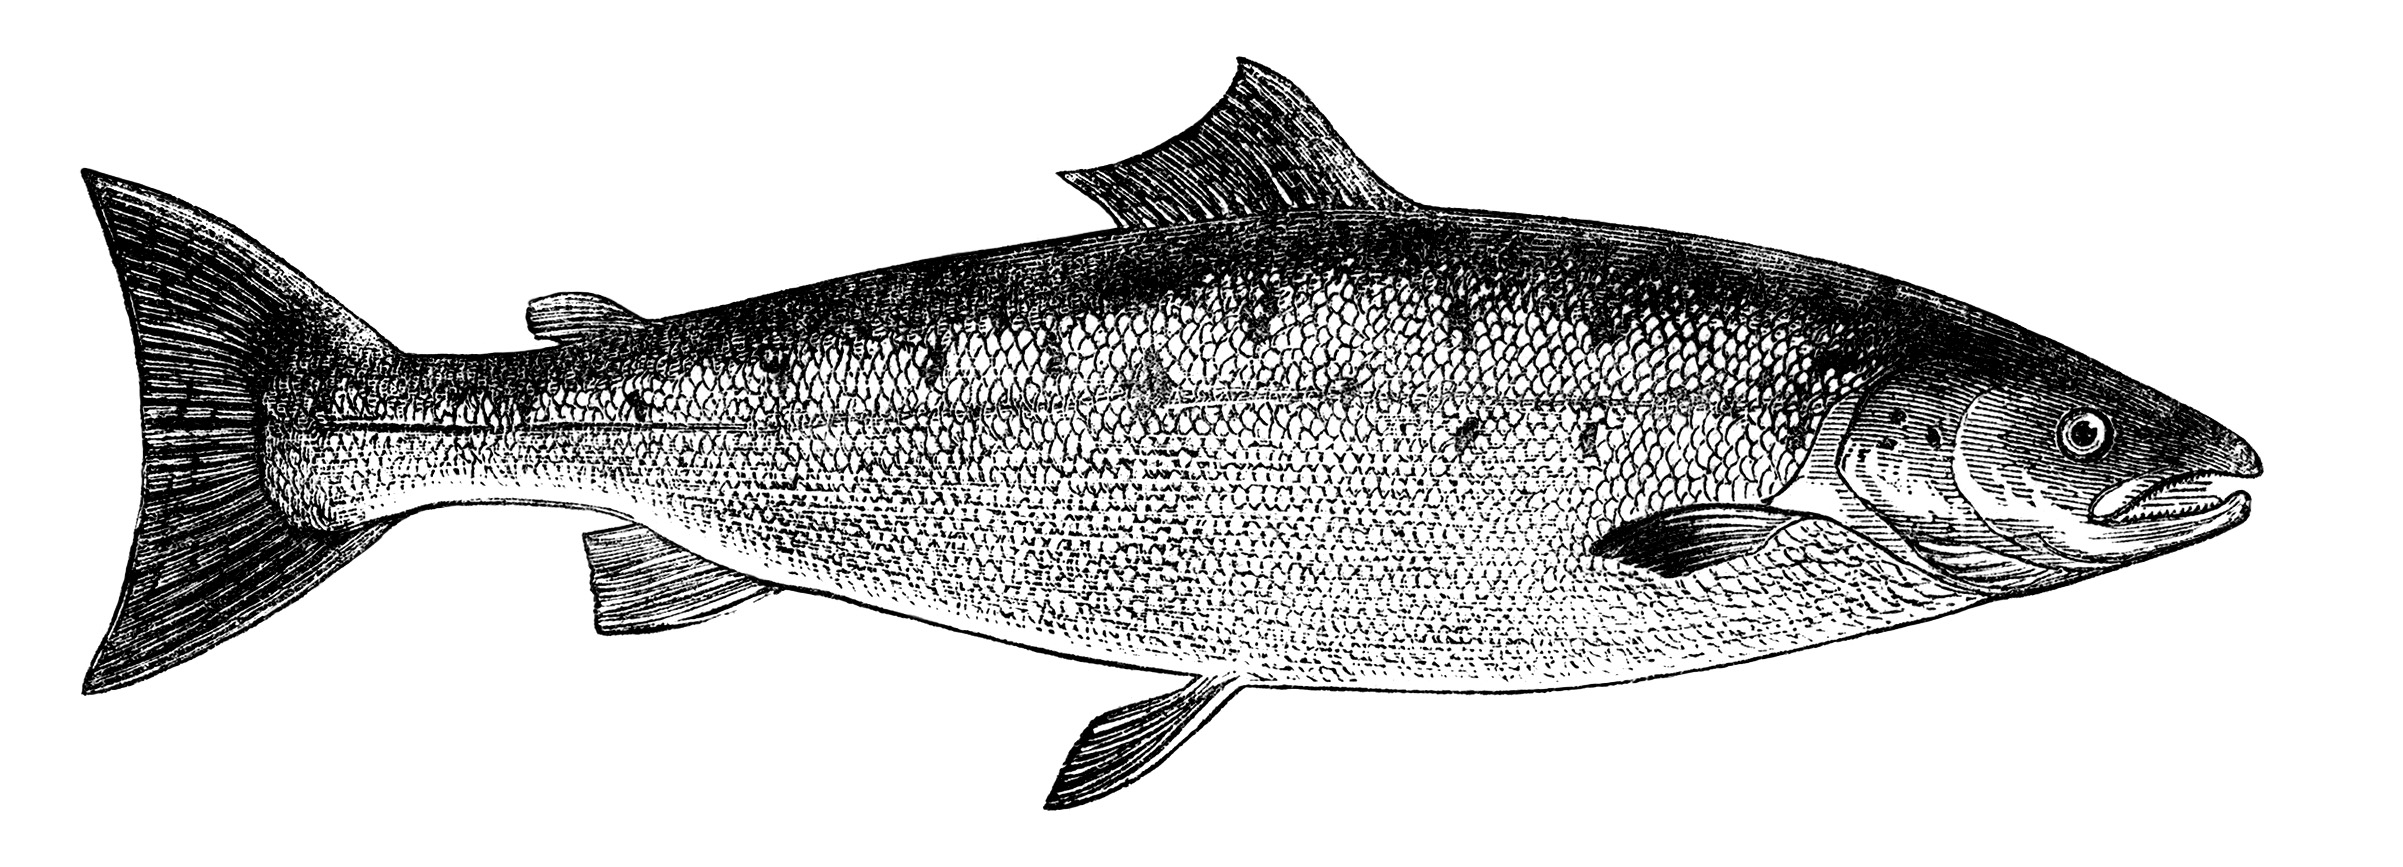 Free vintage fish images salmon and carp old design for Salmon fish images